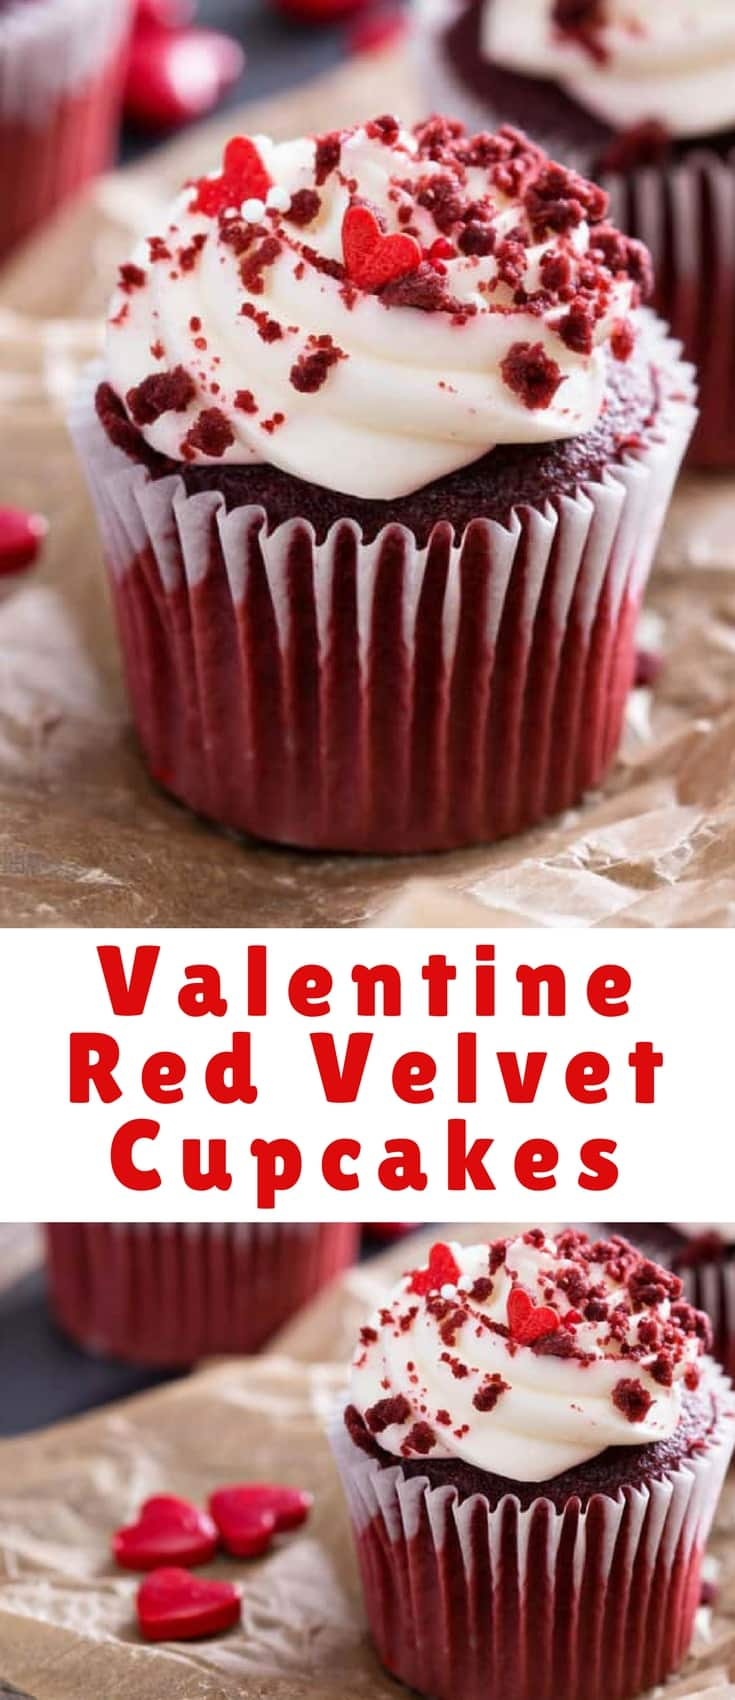 Red Velvet Cupcakes would be a great treat to make for Valentine's Day or any other day you want to make a special treat for someone you love.